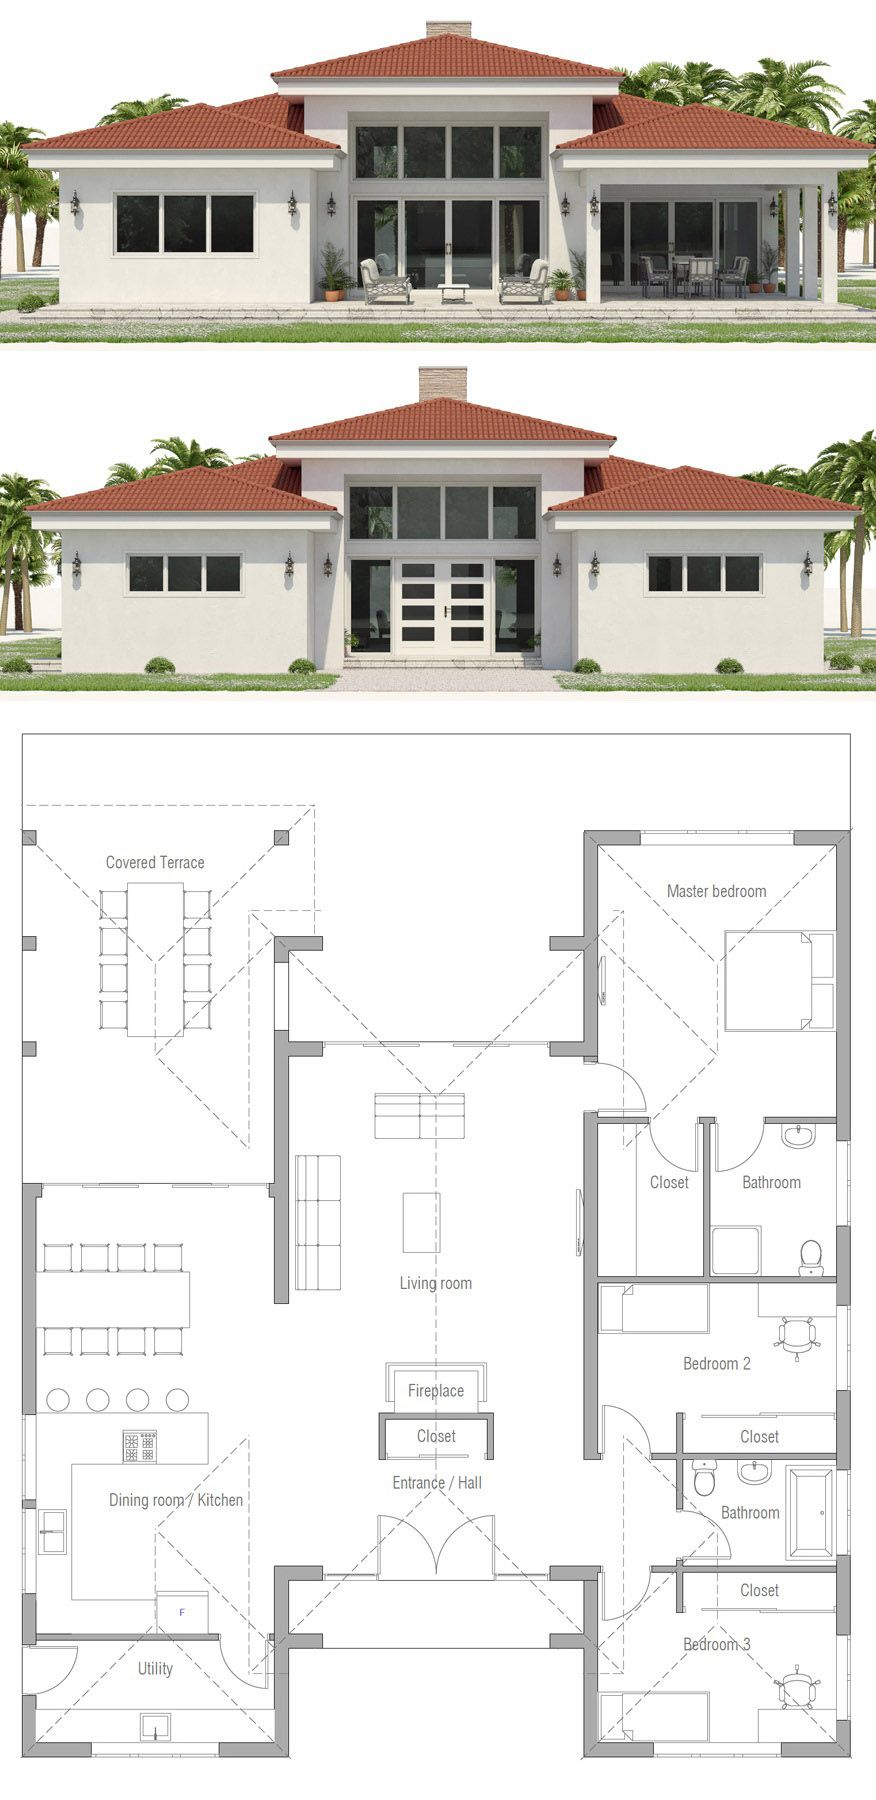 Single Story Home Plan Homeplans Architecture Housedesign Interiordesign House Construction Plan My House Plans Beach House Plans